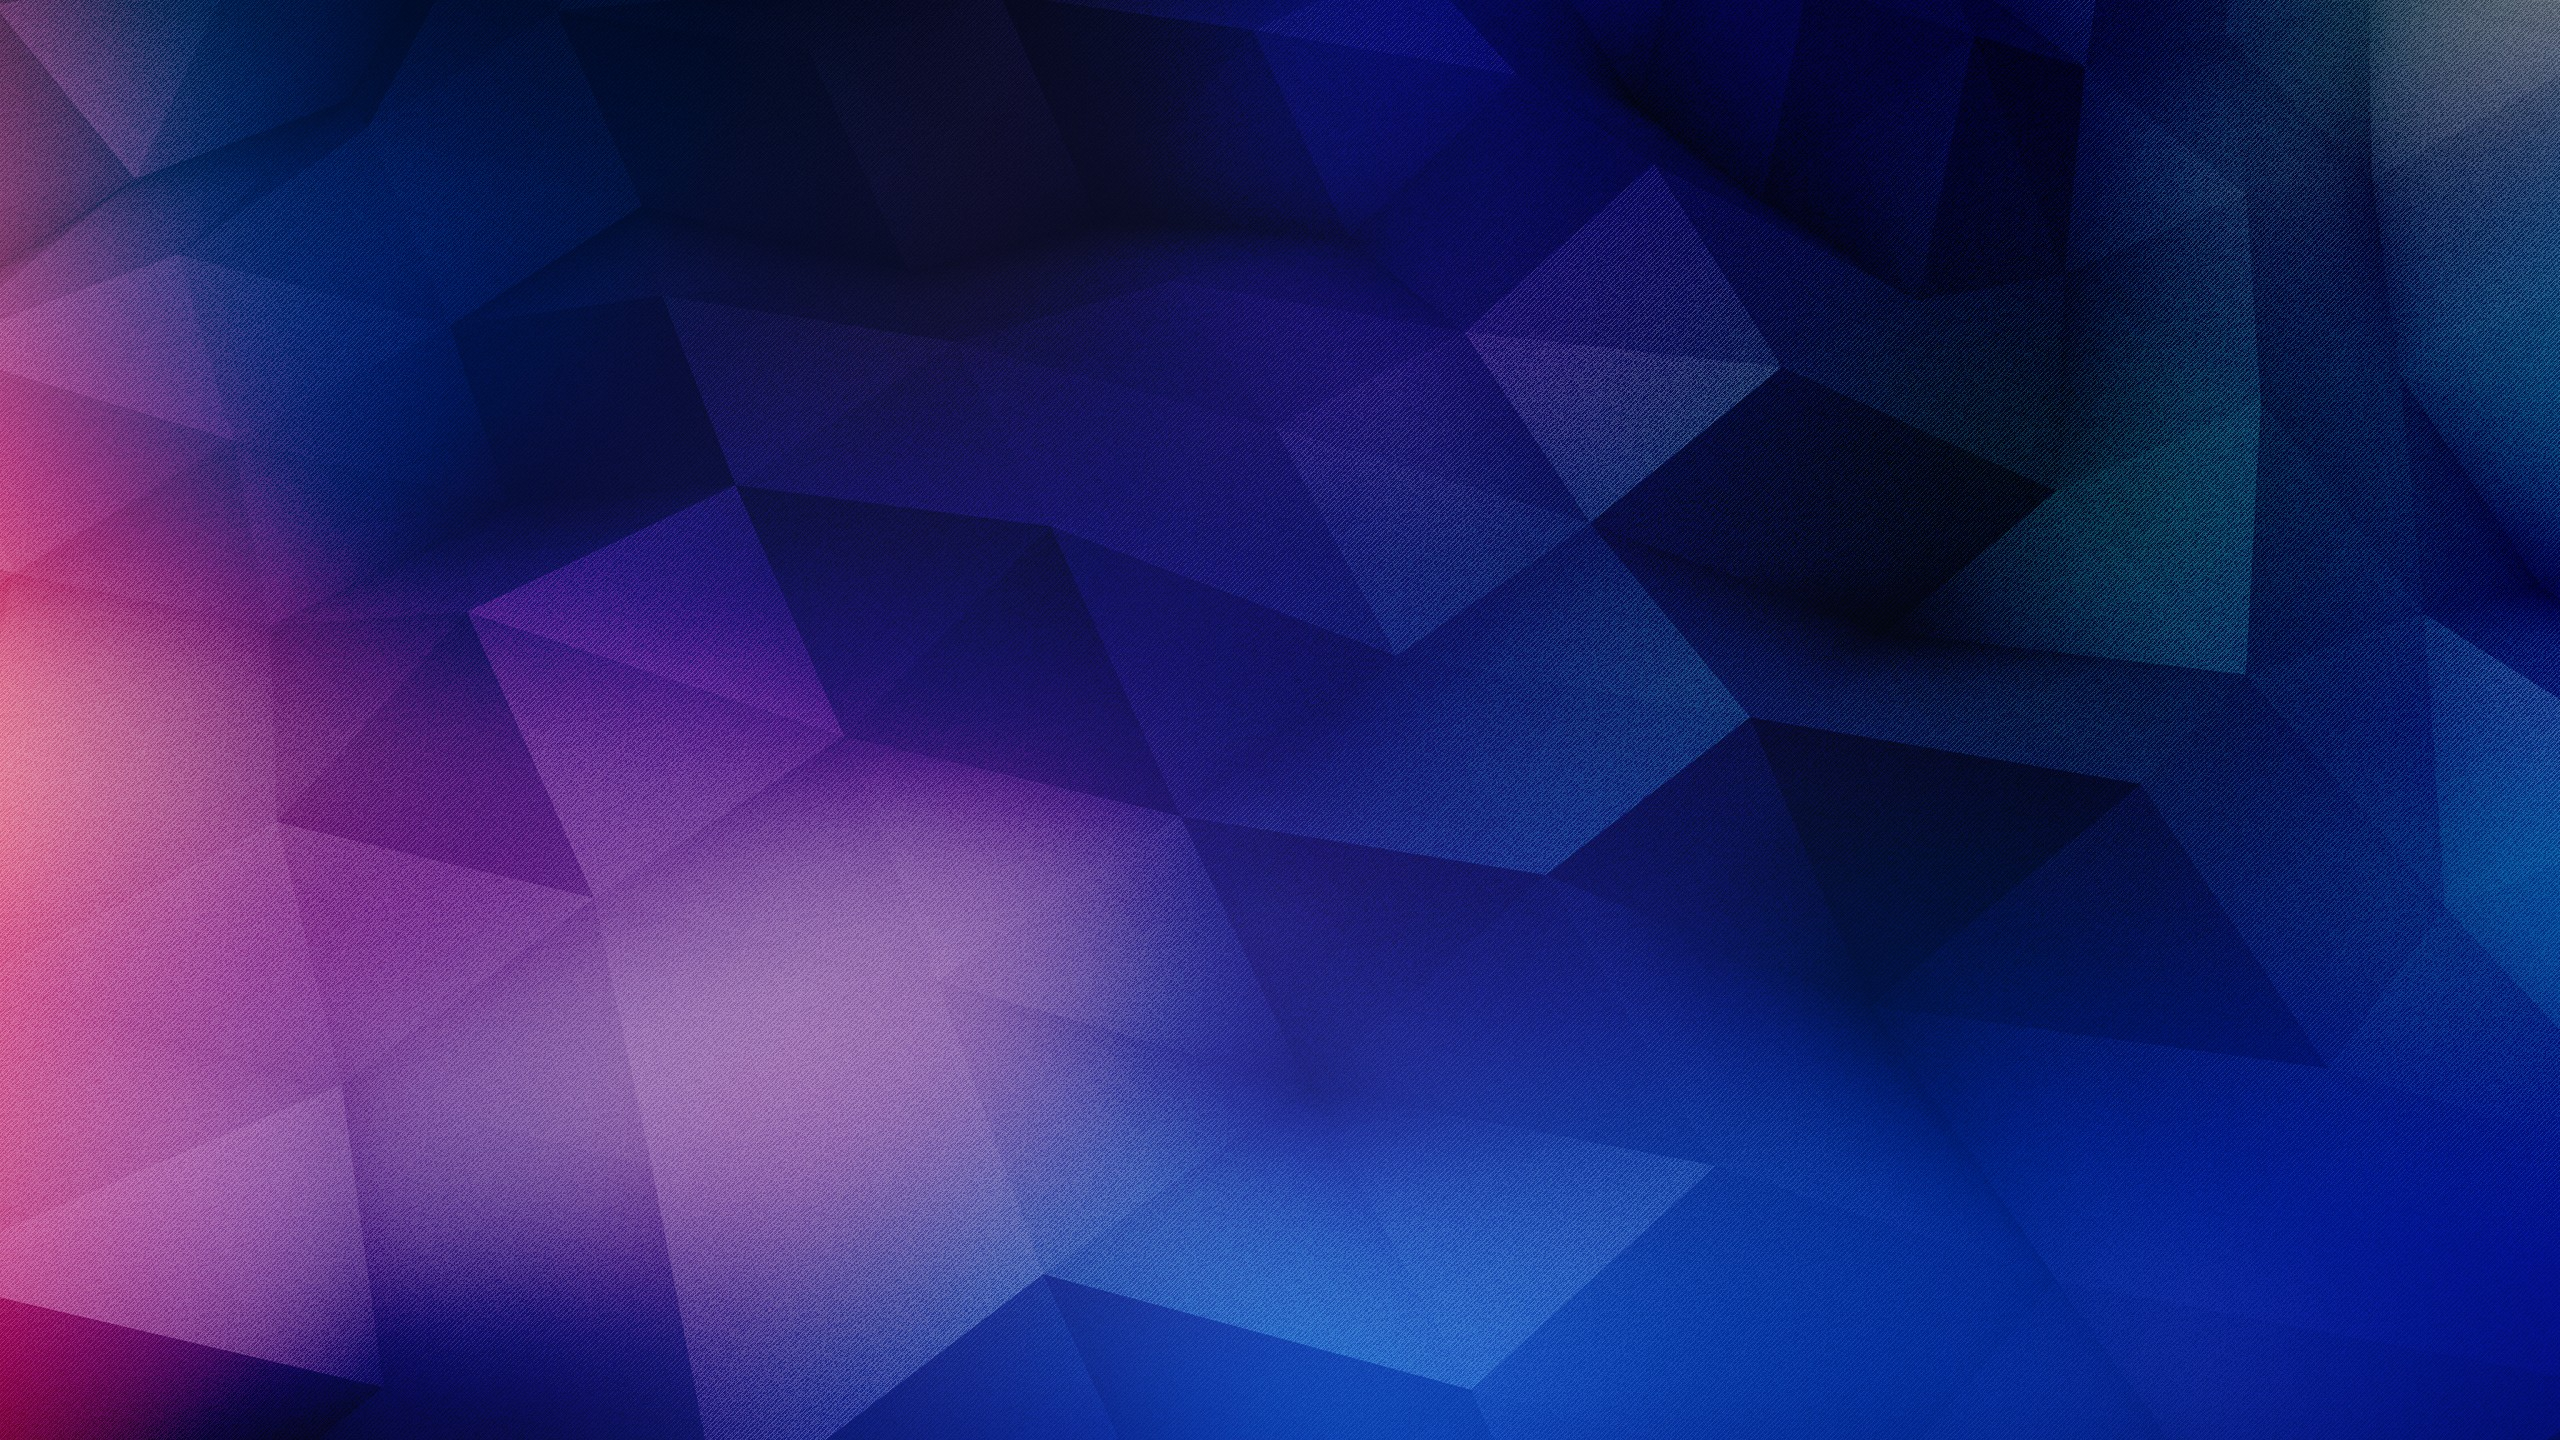 Abstract Geometry Backgrounds HD Wallpaper 2560x1440